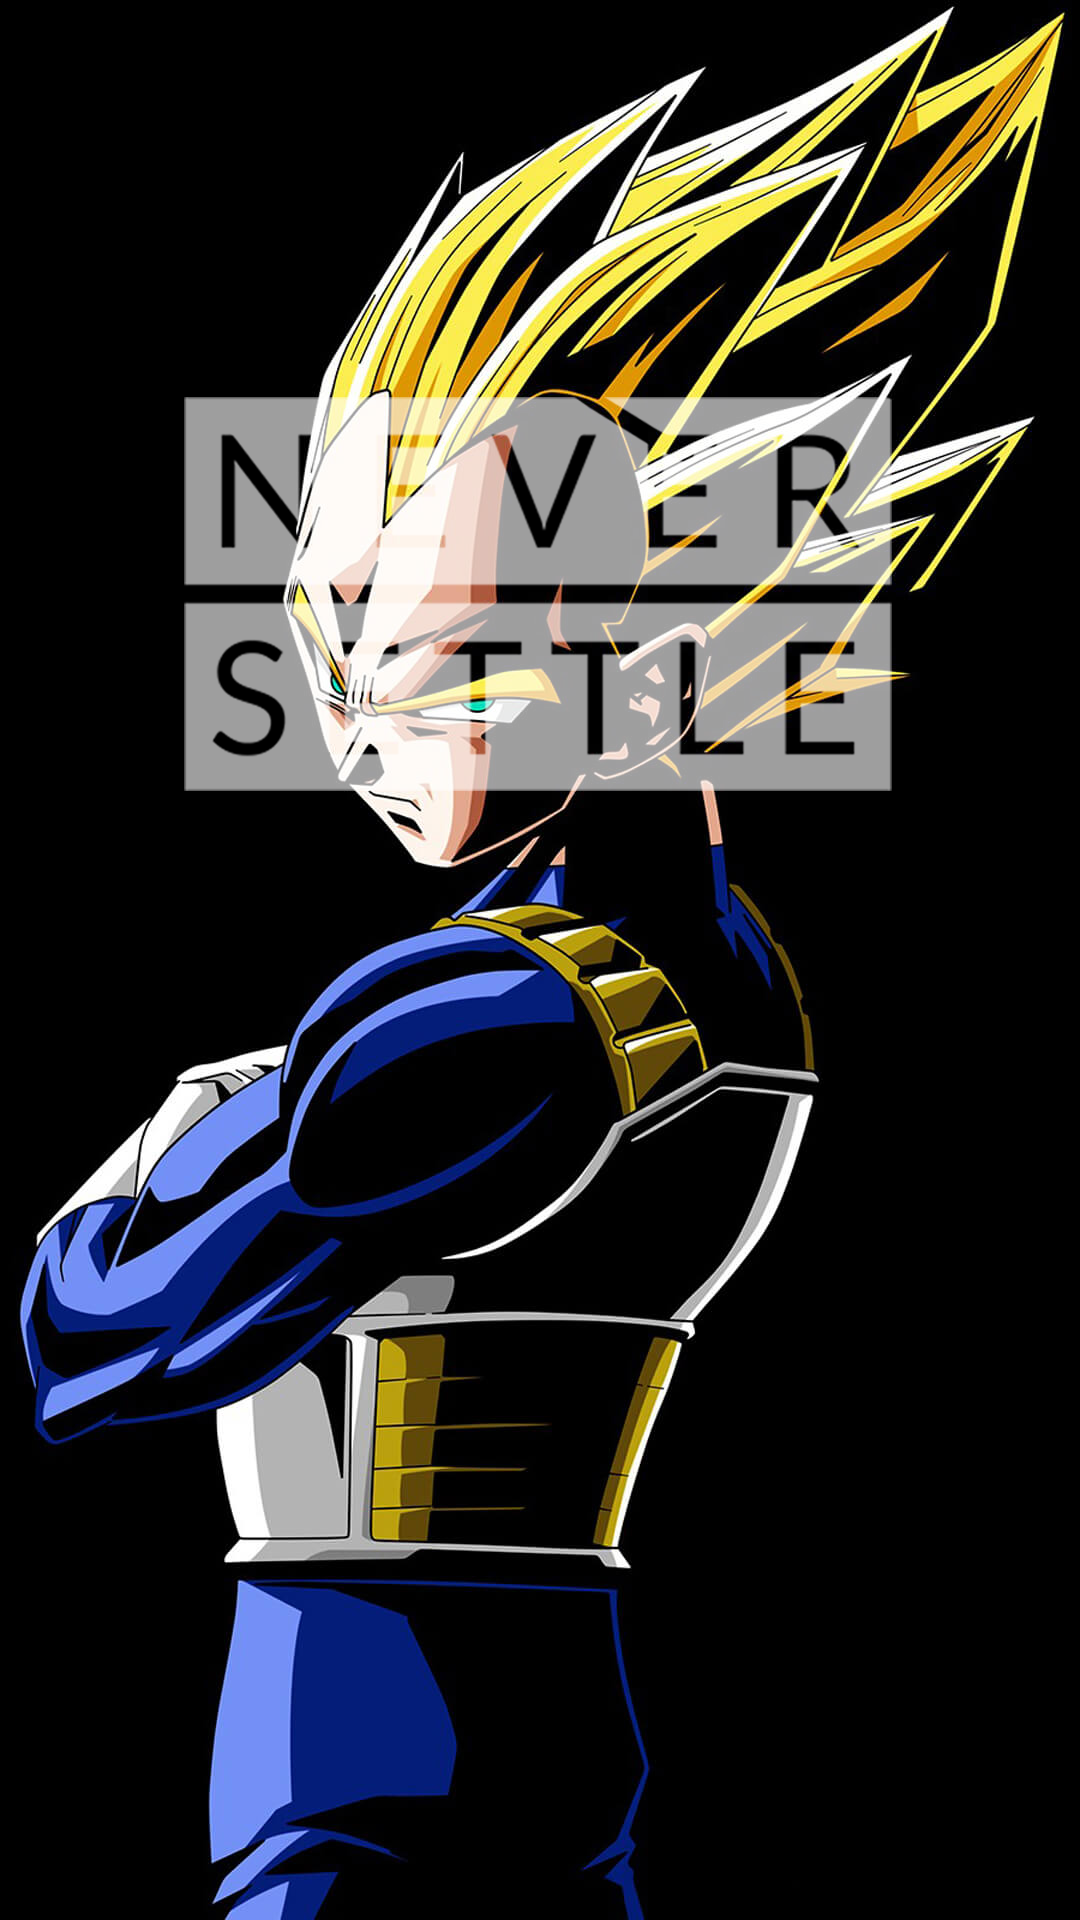 vegeta wallpaper never settle - oneplus forums